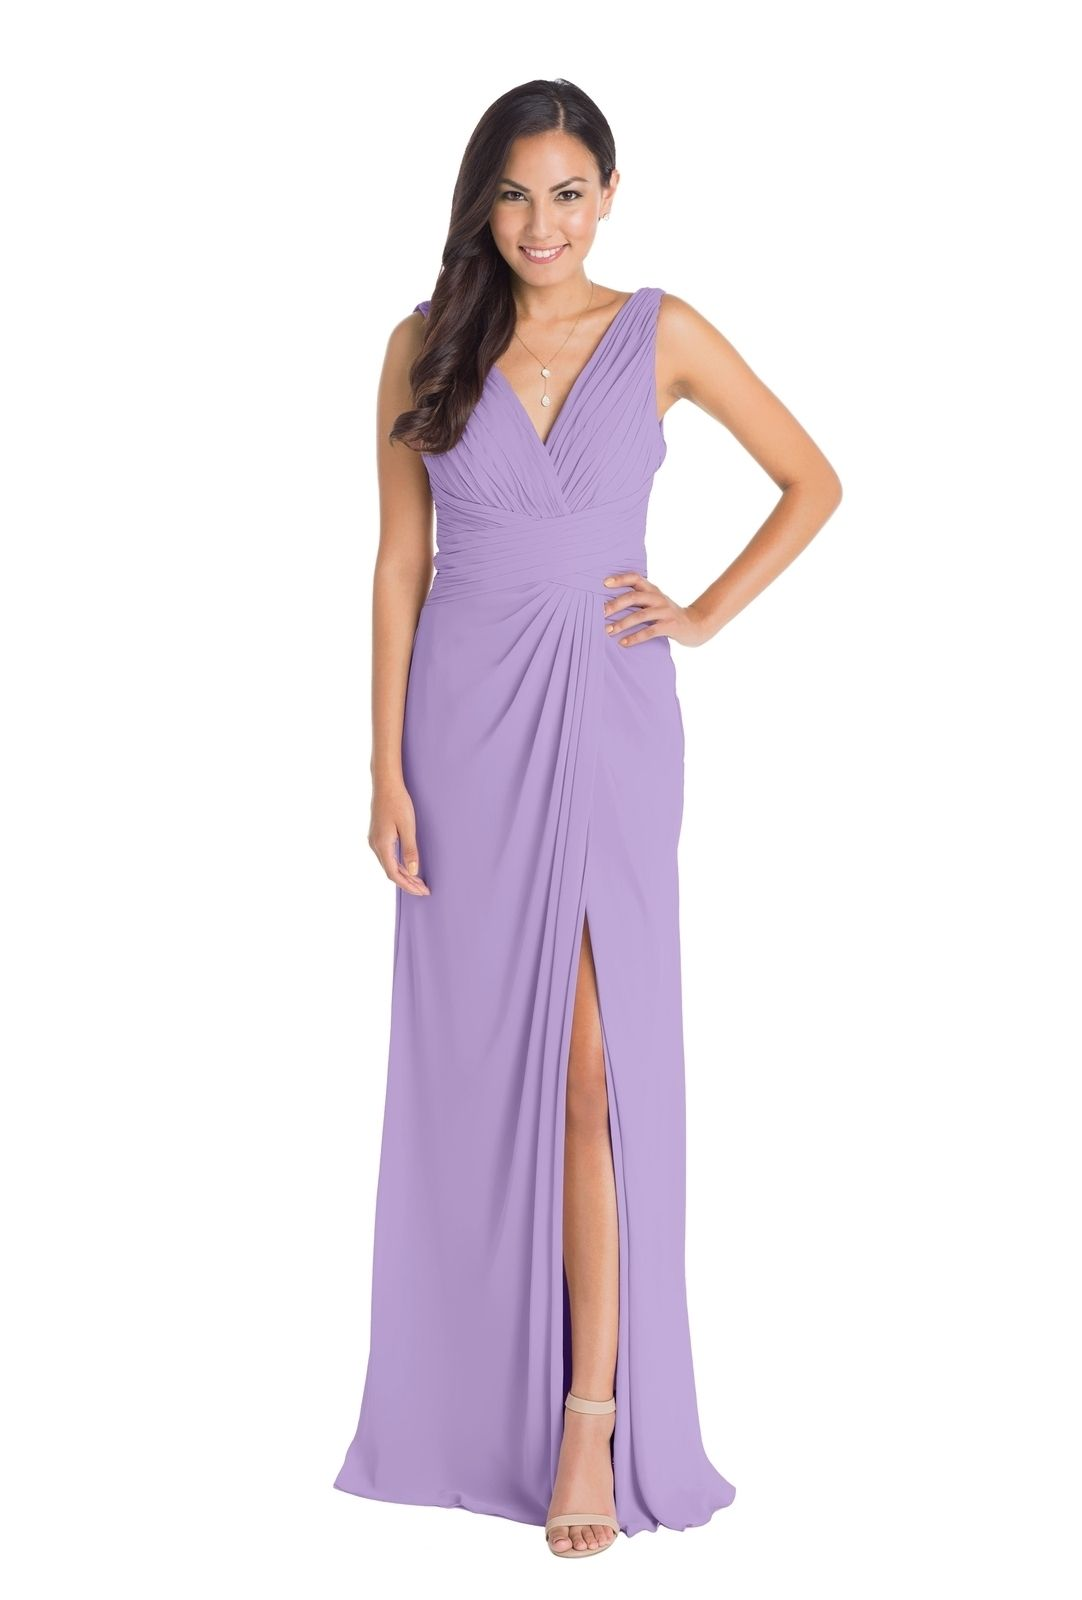 Vera wang wedding dress rental  Loving lavender bridesmaid dresses Rent this watterswtoo Maria